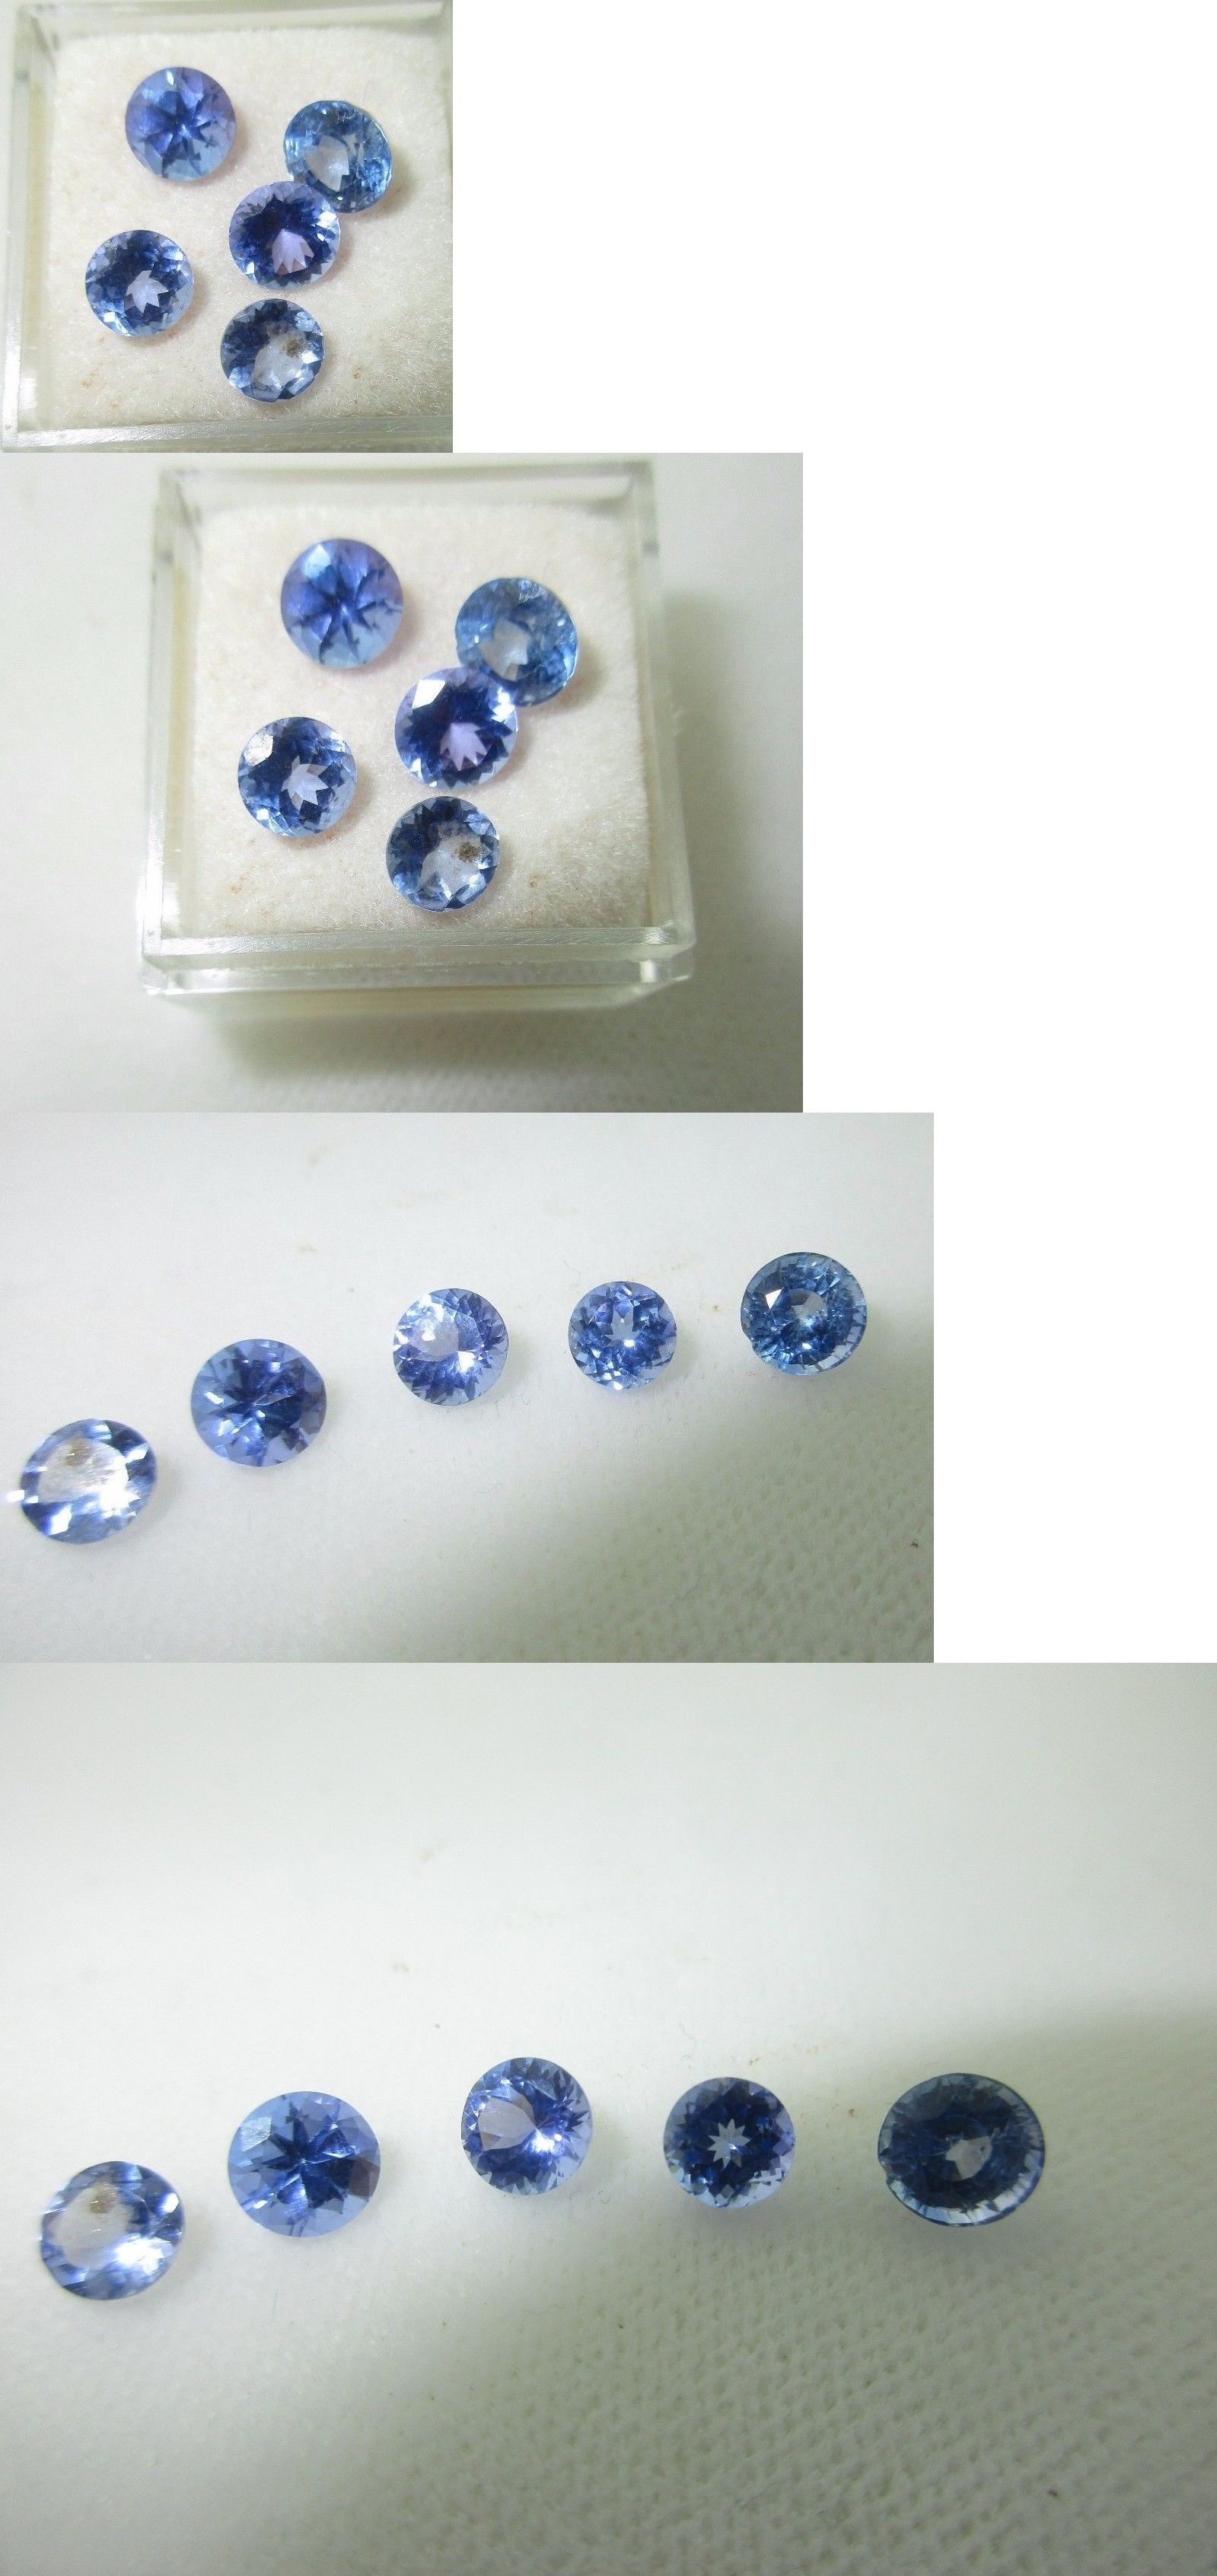 gn jewellery product us top middle colour tanzanite shaped delivery category gemstone stones to loose the uk cushion east